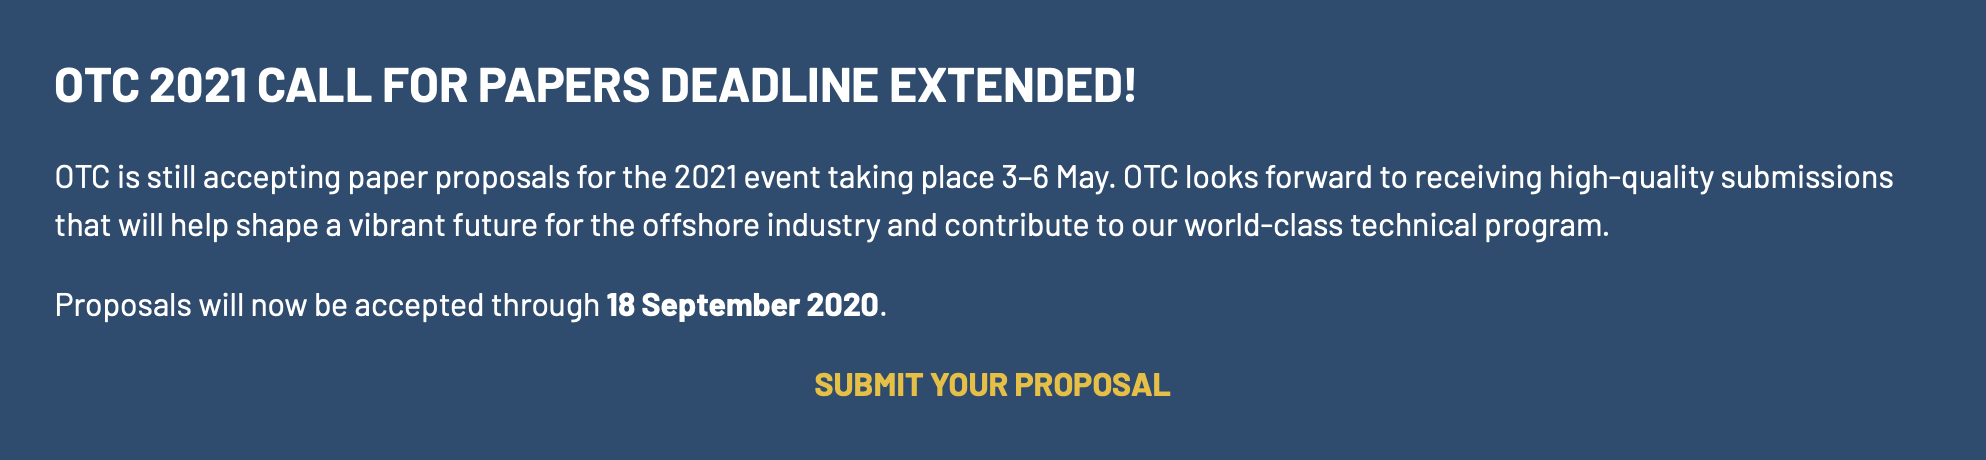 OTC Call for Papers